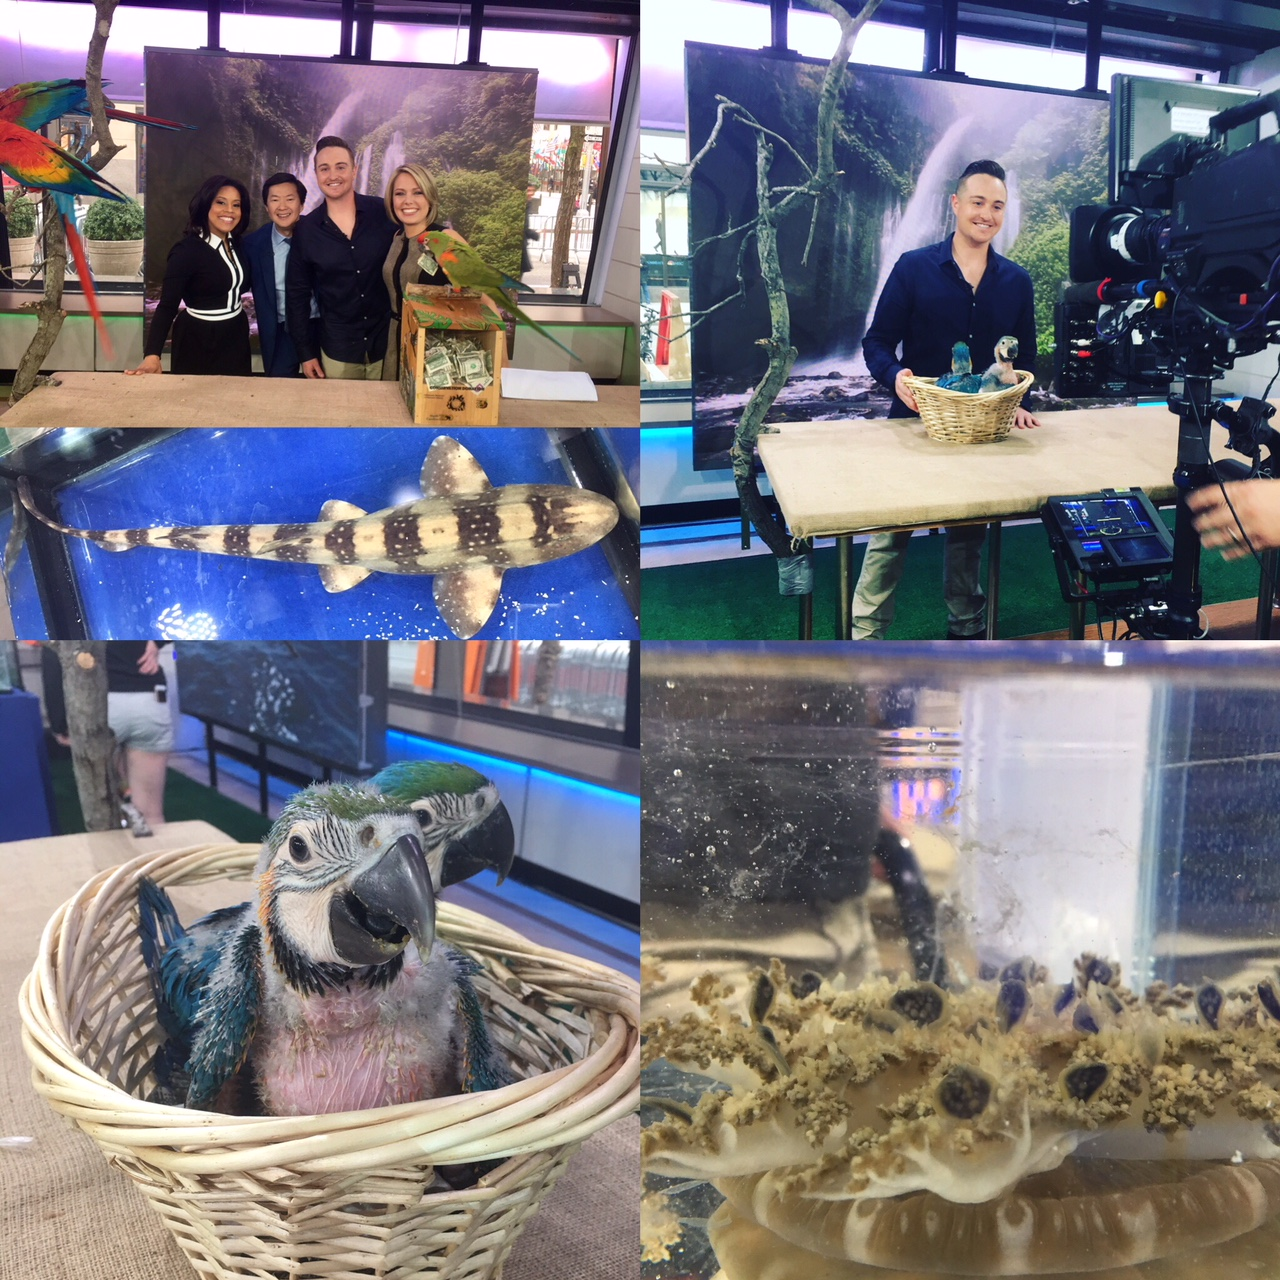 Top: On the set of  The Today Show  with anchors Sheinelle Jones, Dylan Dreyer, and actor Ken Jeong with macaws and a Bamboo Shark. Bottom Left: Baby Blue and Gold Macaws. Bottom Right: Upside-down Jellyfish